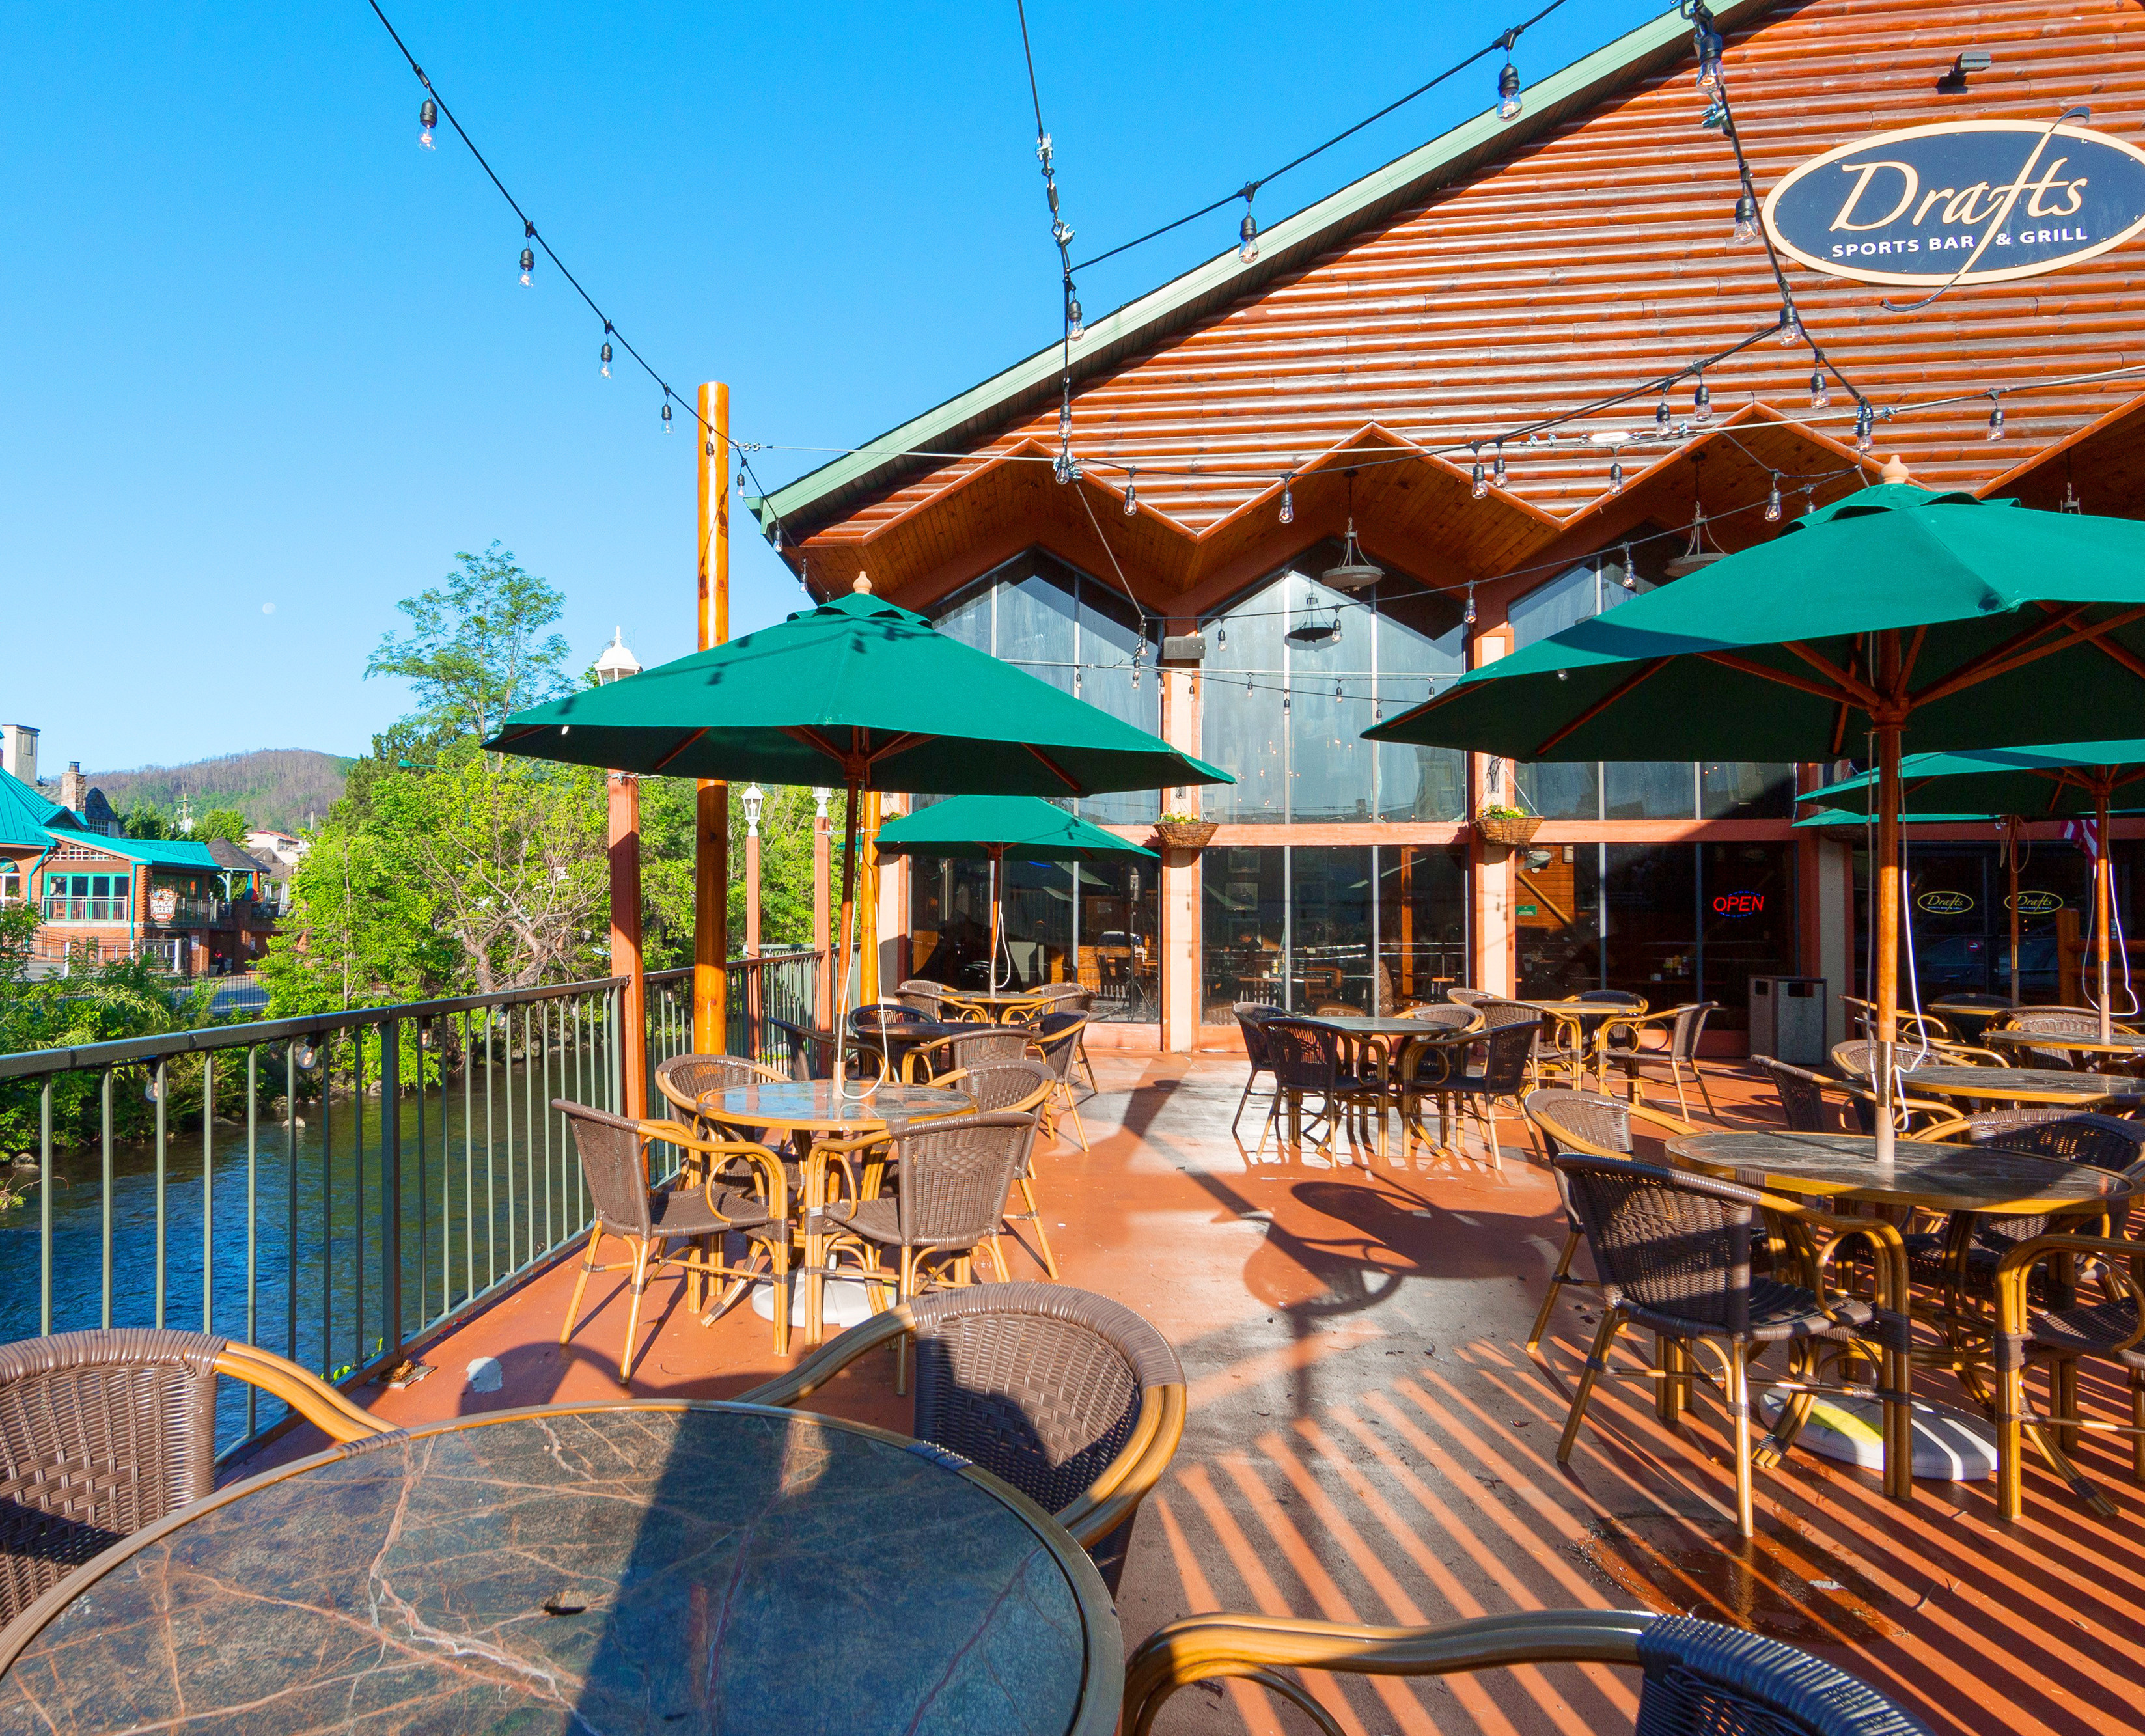 Drafts Sports Grill at our Gatlinburg Convention Center Hotel | River Terrace Resort & Convention Center | Westgate Resorts